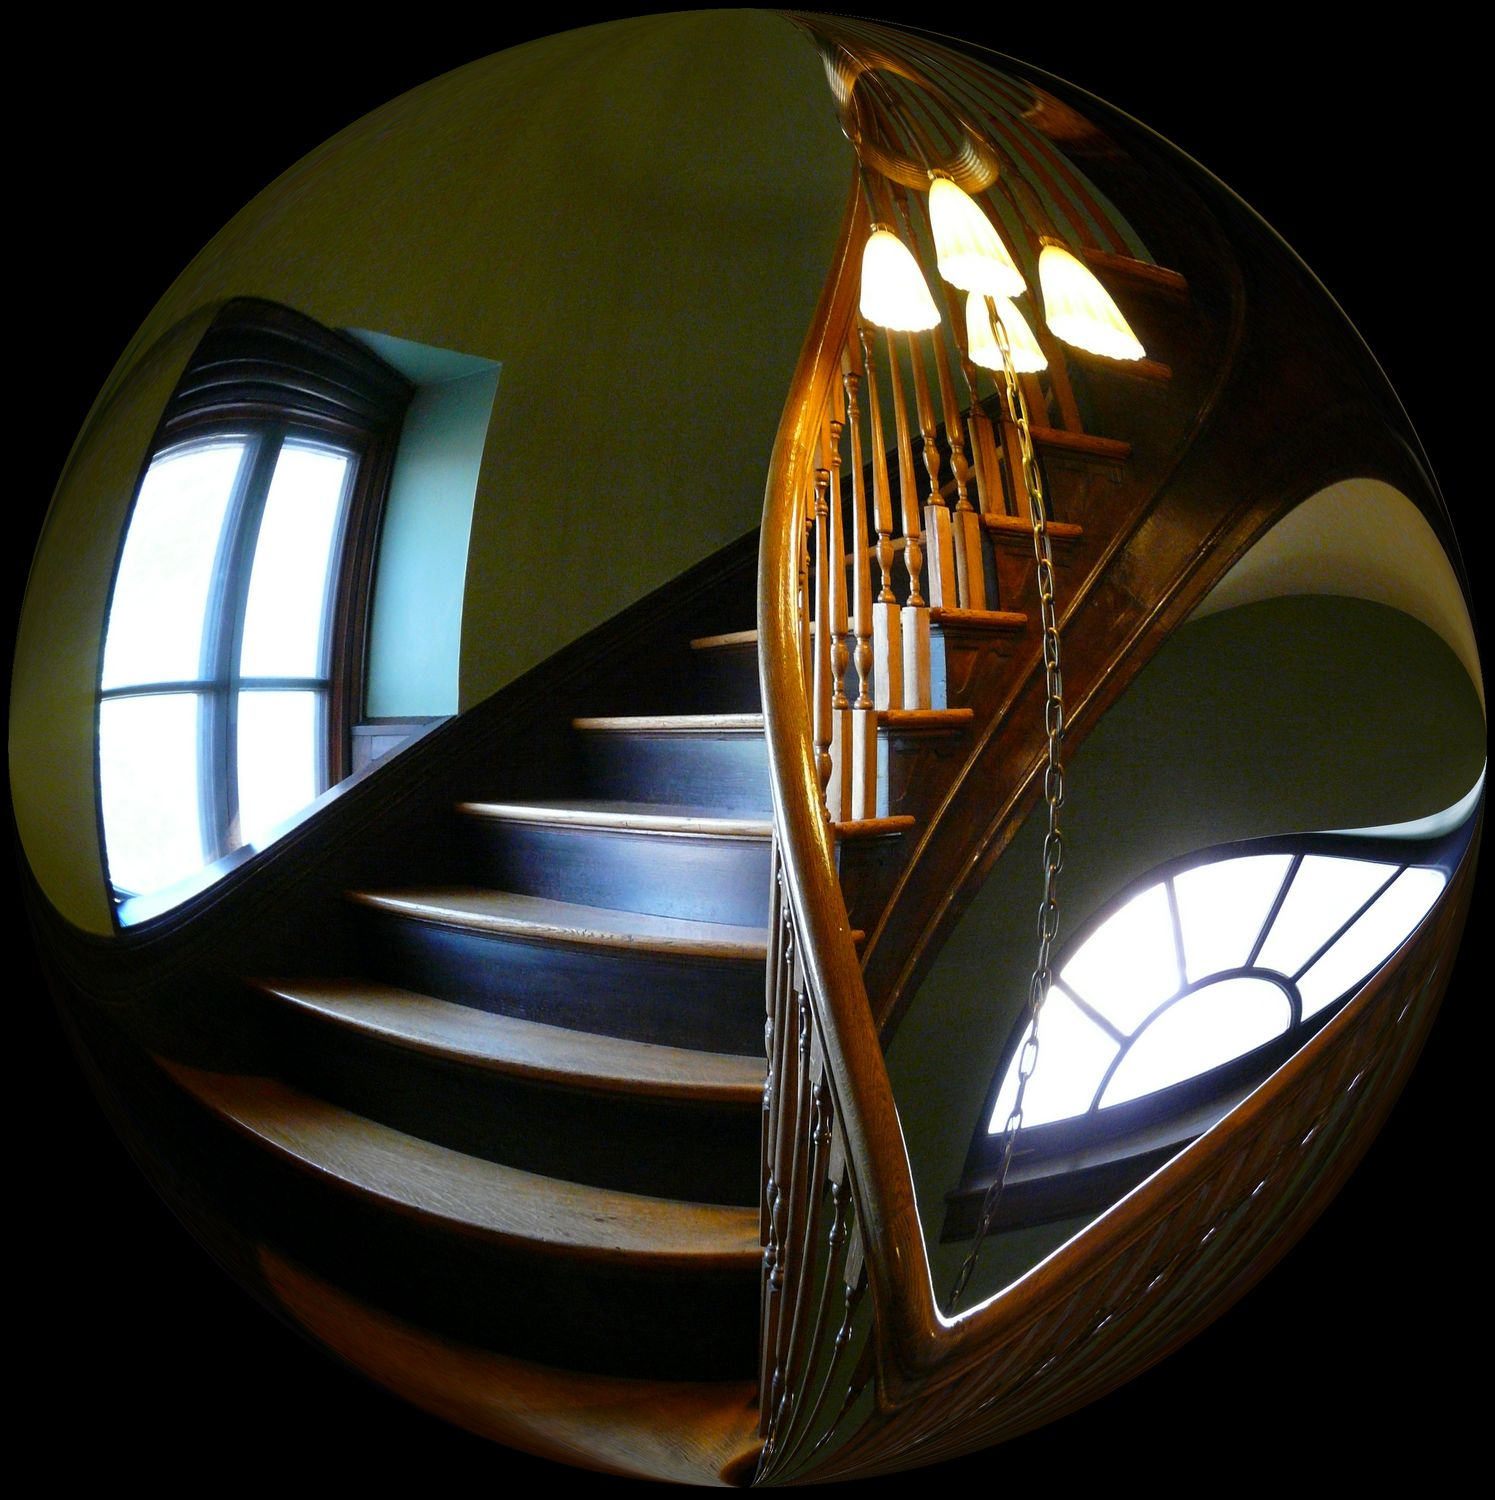 -   spiral staircase easily fits inside a bubble - Bubble Pictures - made with Wilkington-Smythe